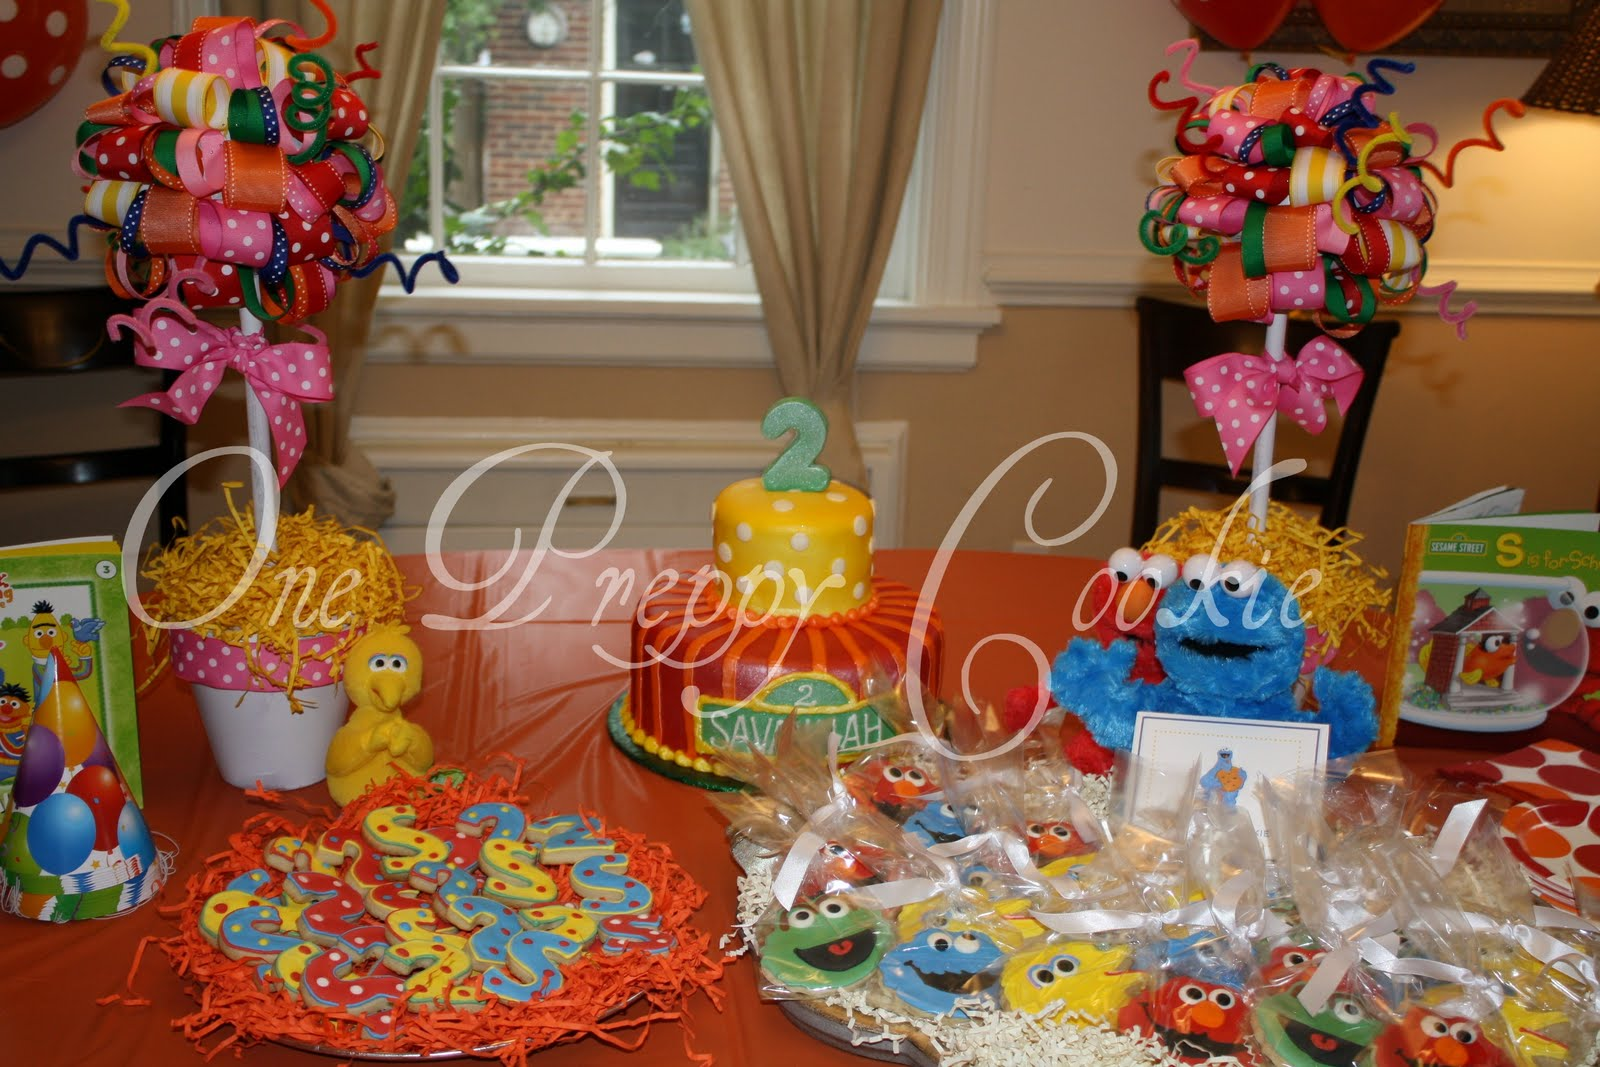 We Decided On Character Cookies As Favors And S 2 To Be Served Alongside The Cake Which Was Ordered From A Local Bakery